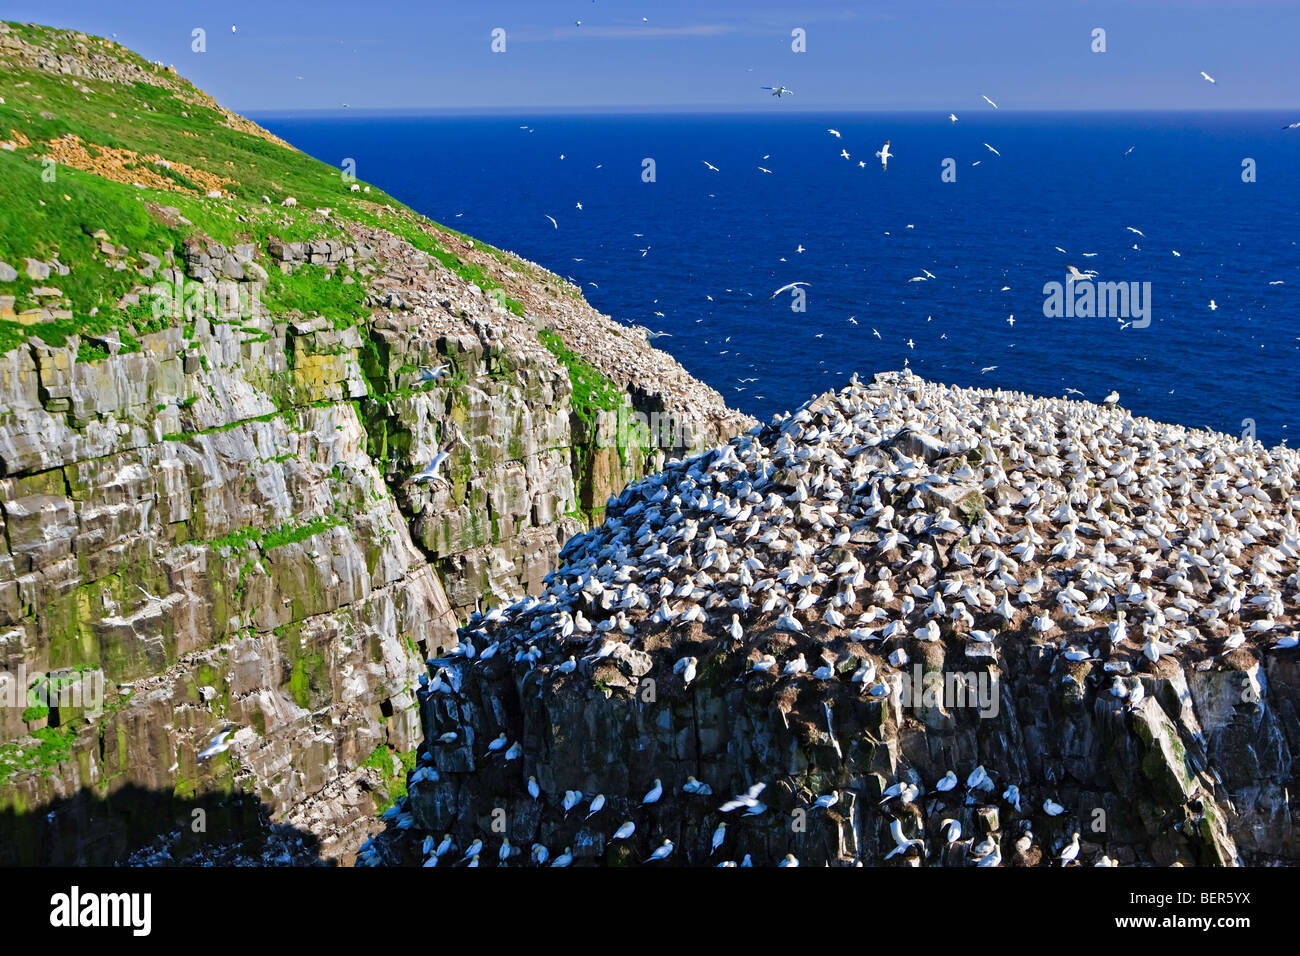 Northern Gannets, Morus bassanus, nesting on Bird Rock at the Cape St Mary's Ecological Reserve, Cape St Mary's, - Stock Image